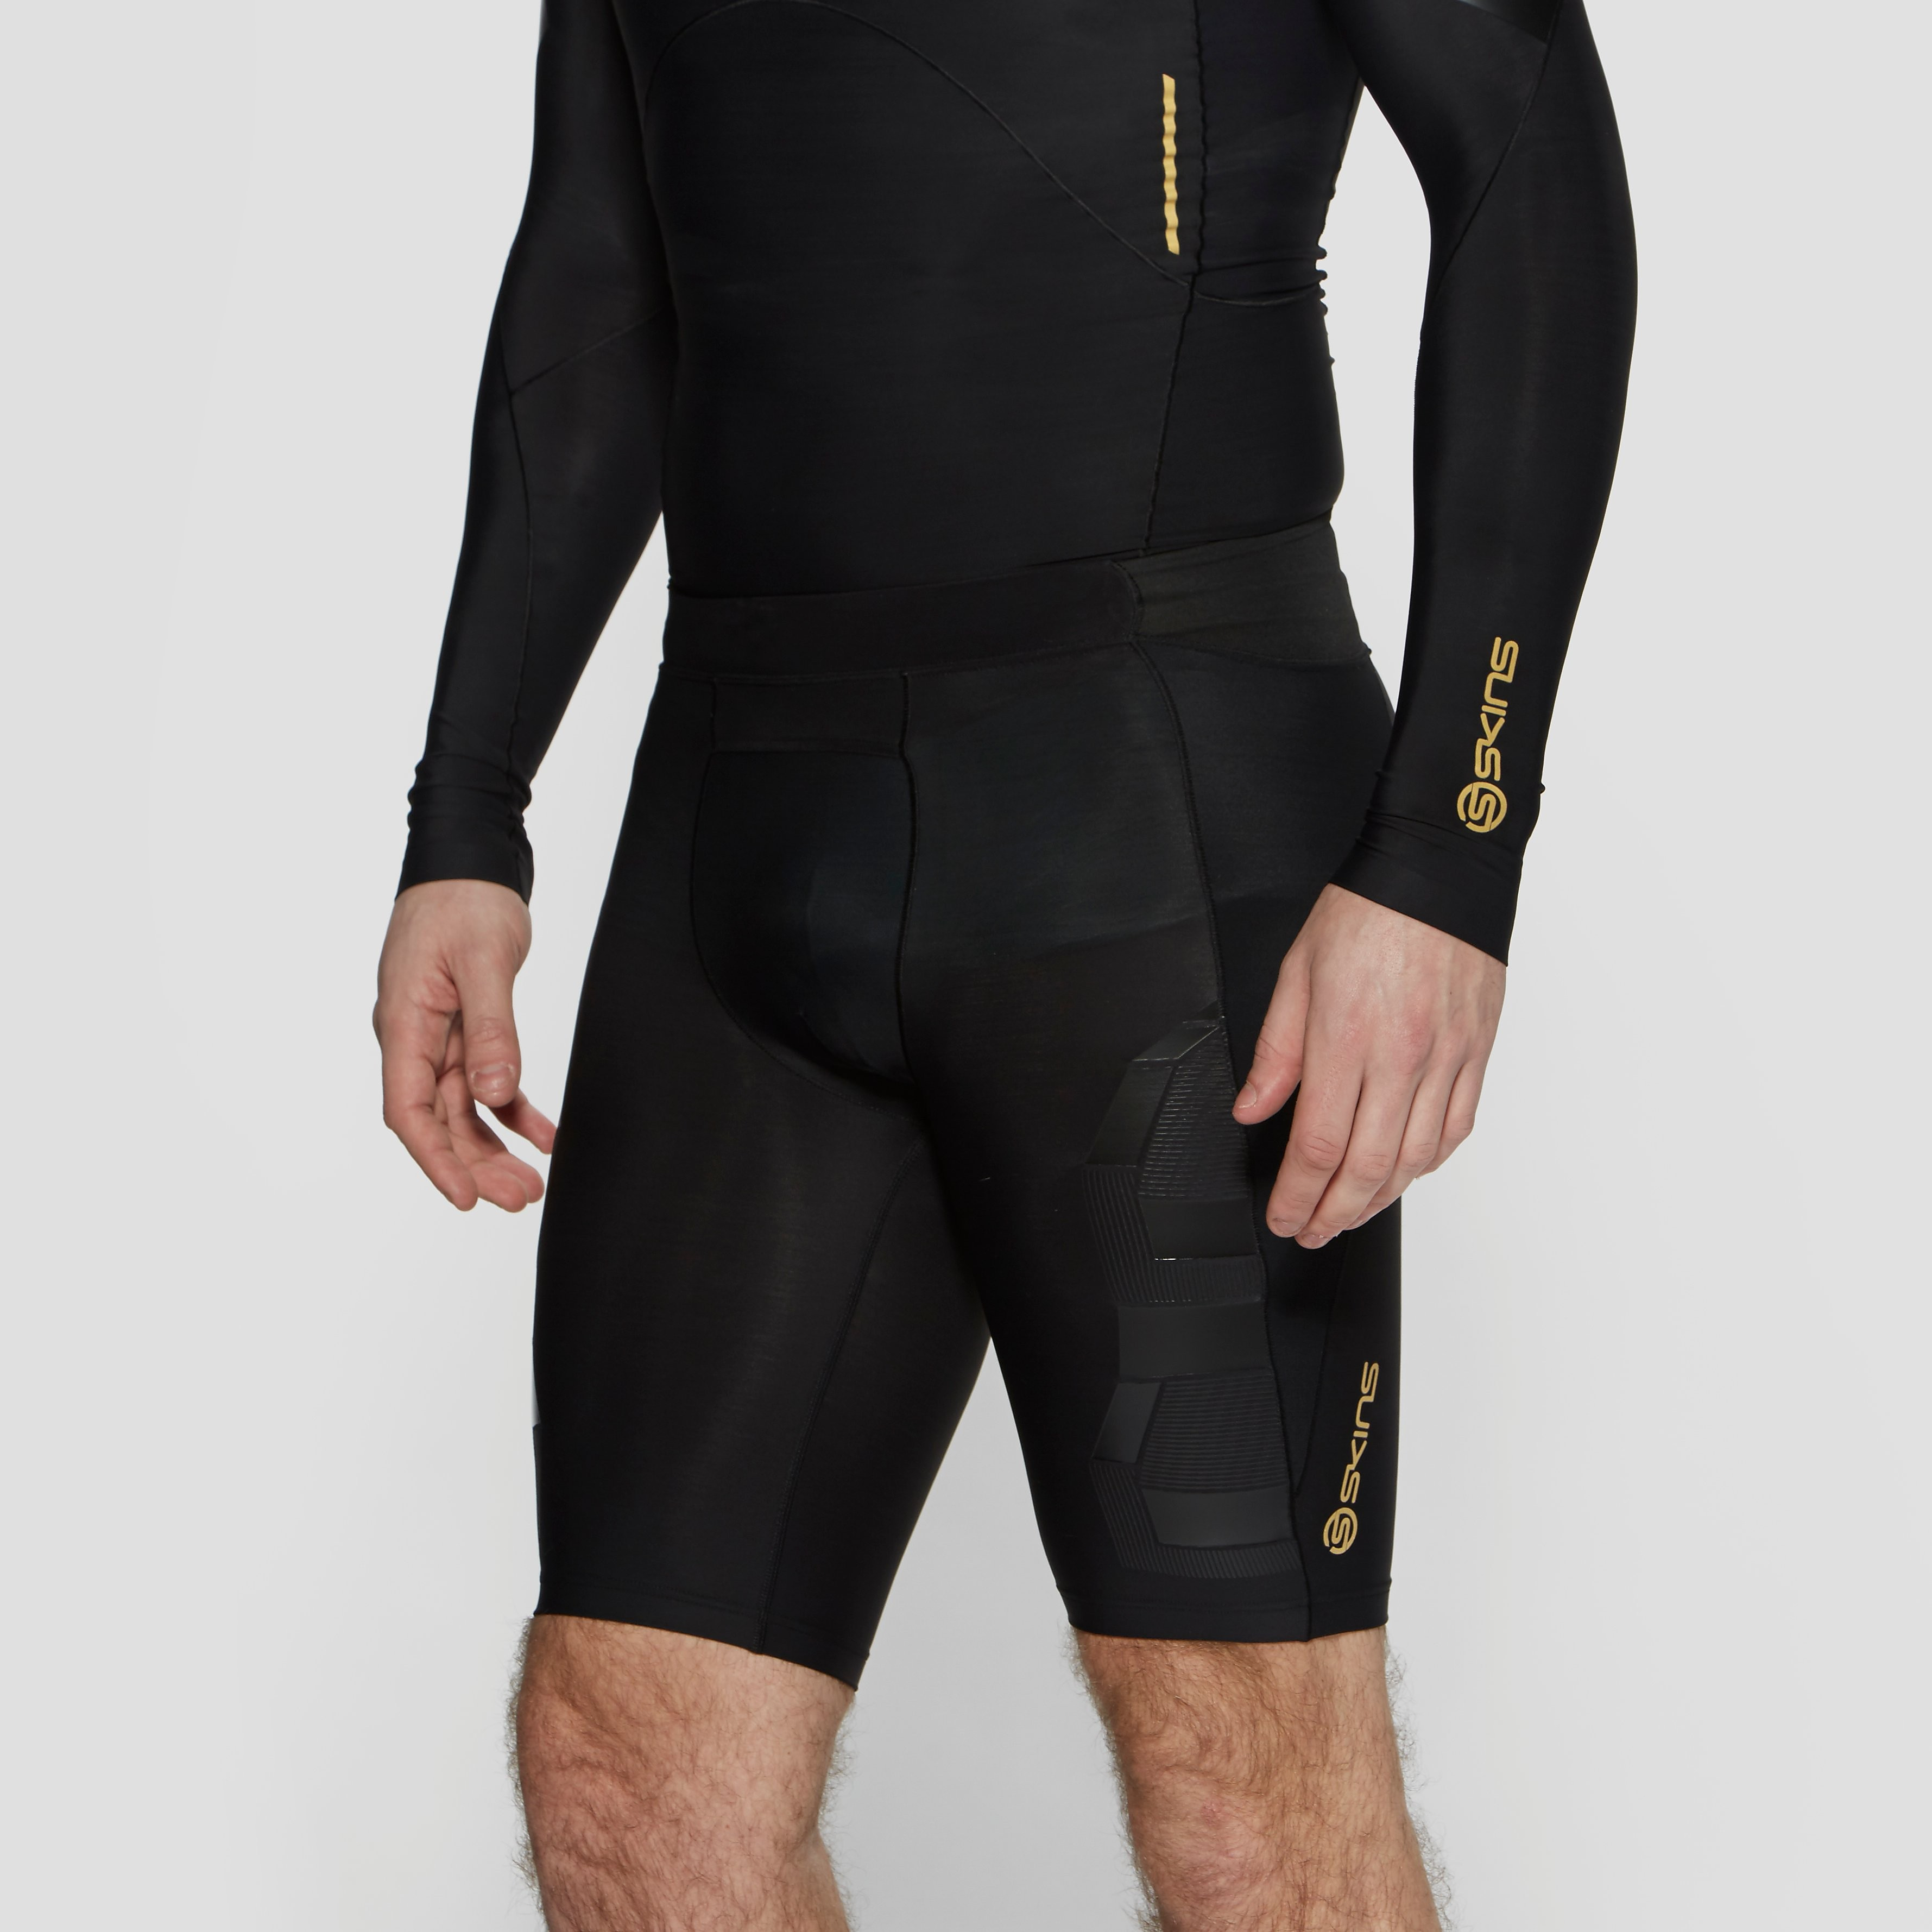 Skins A400 Men's Compression Half Tights